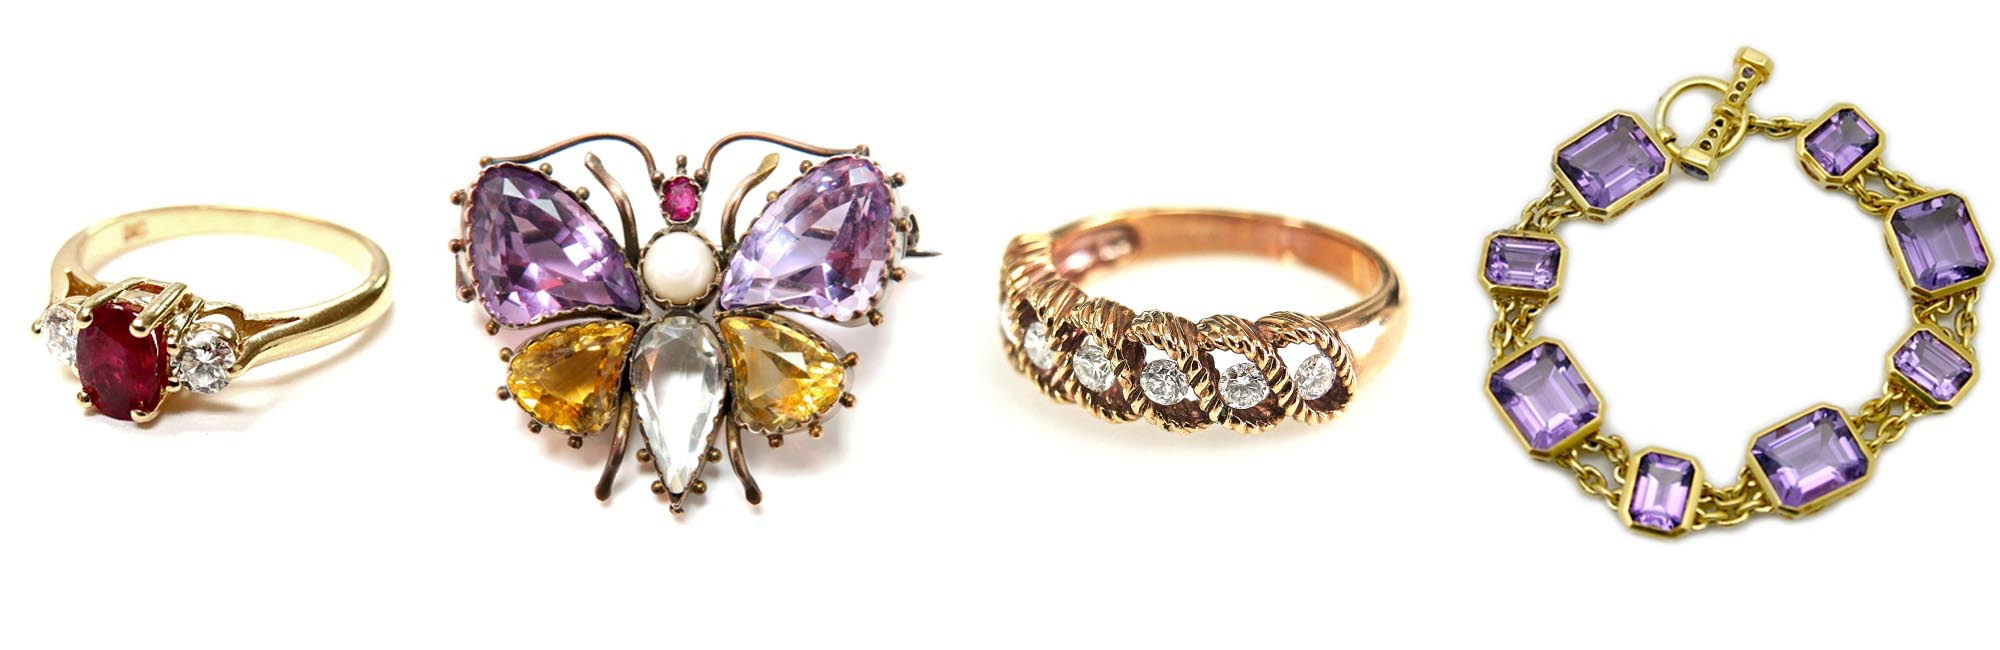 antiques amp fine jewellery in toronto cynthia findlay